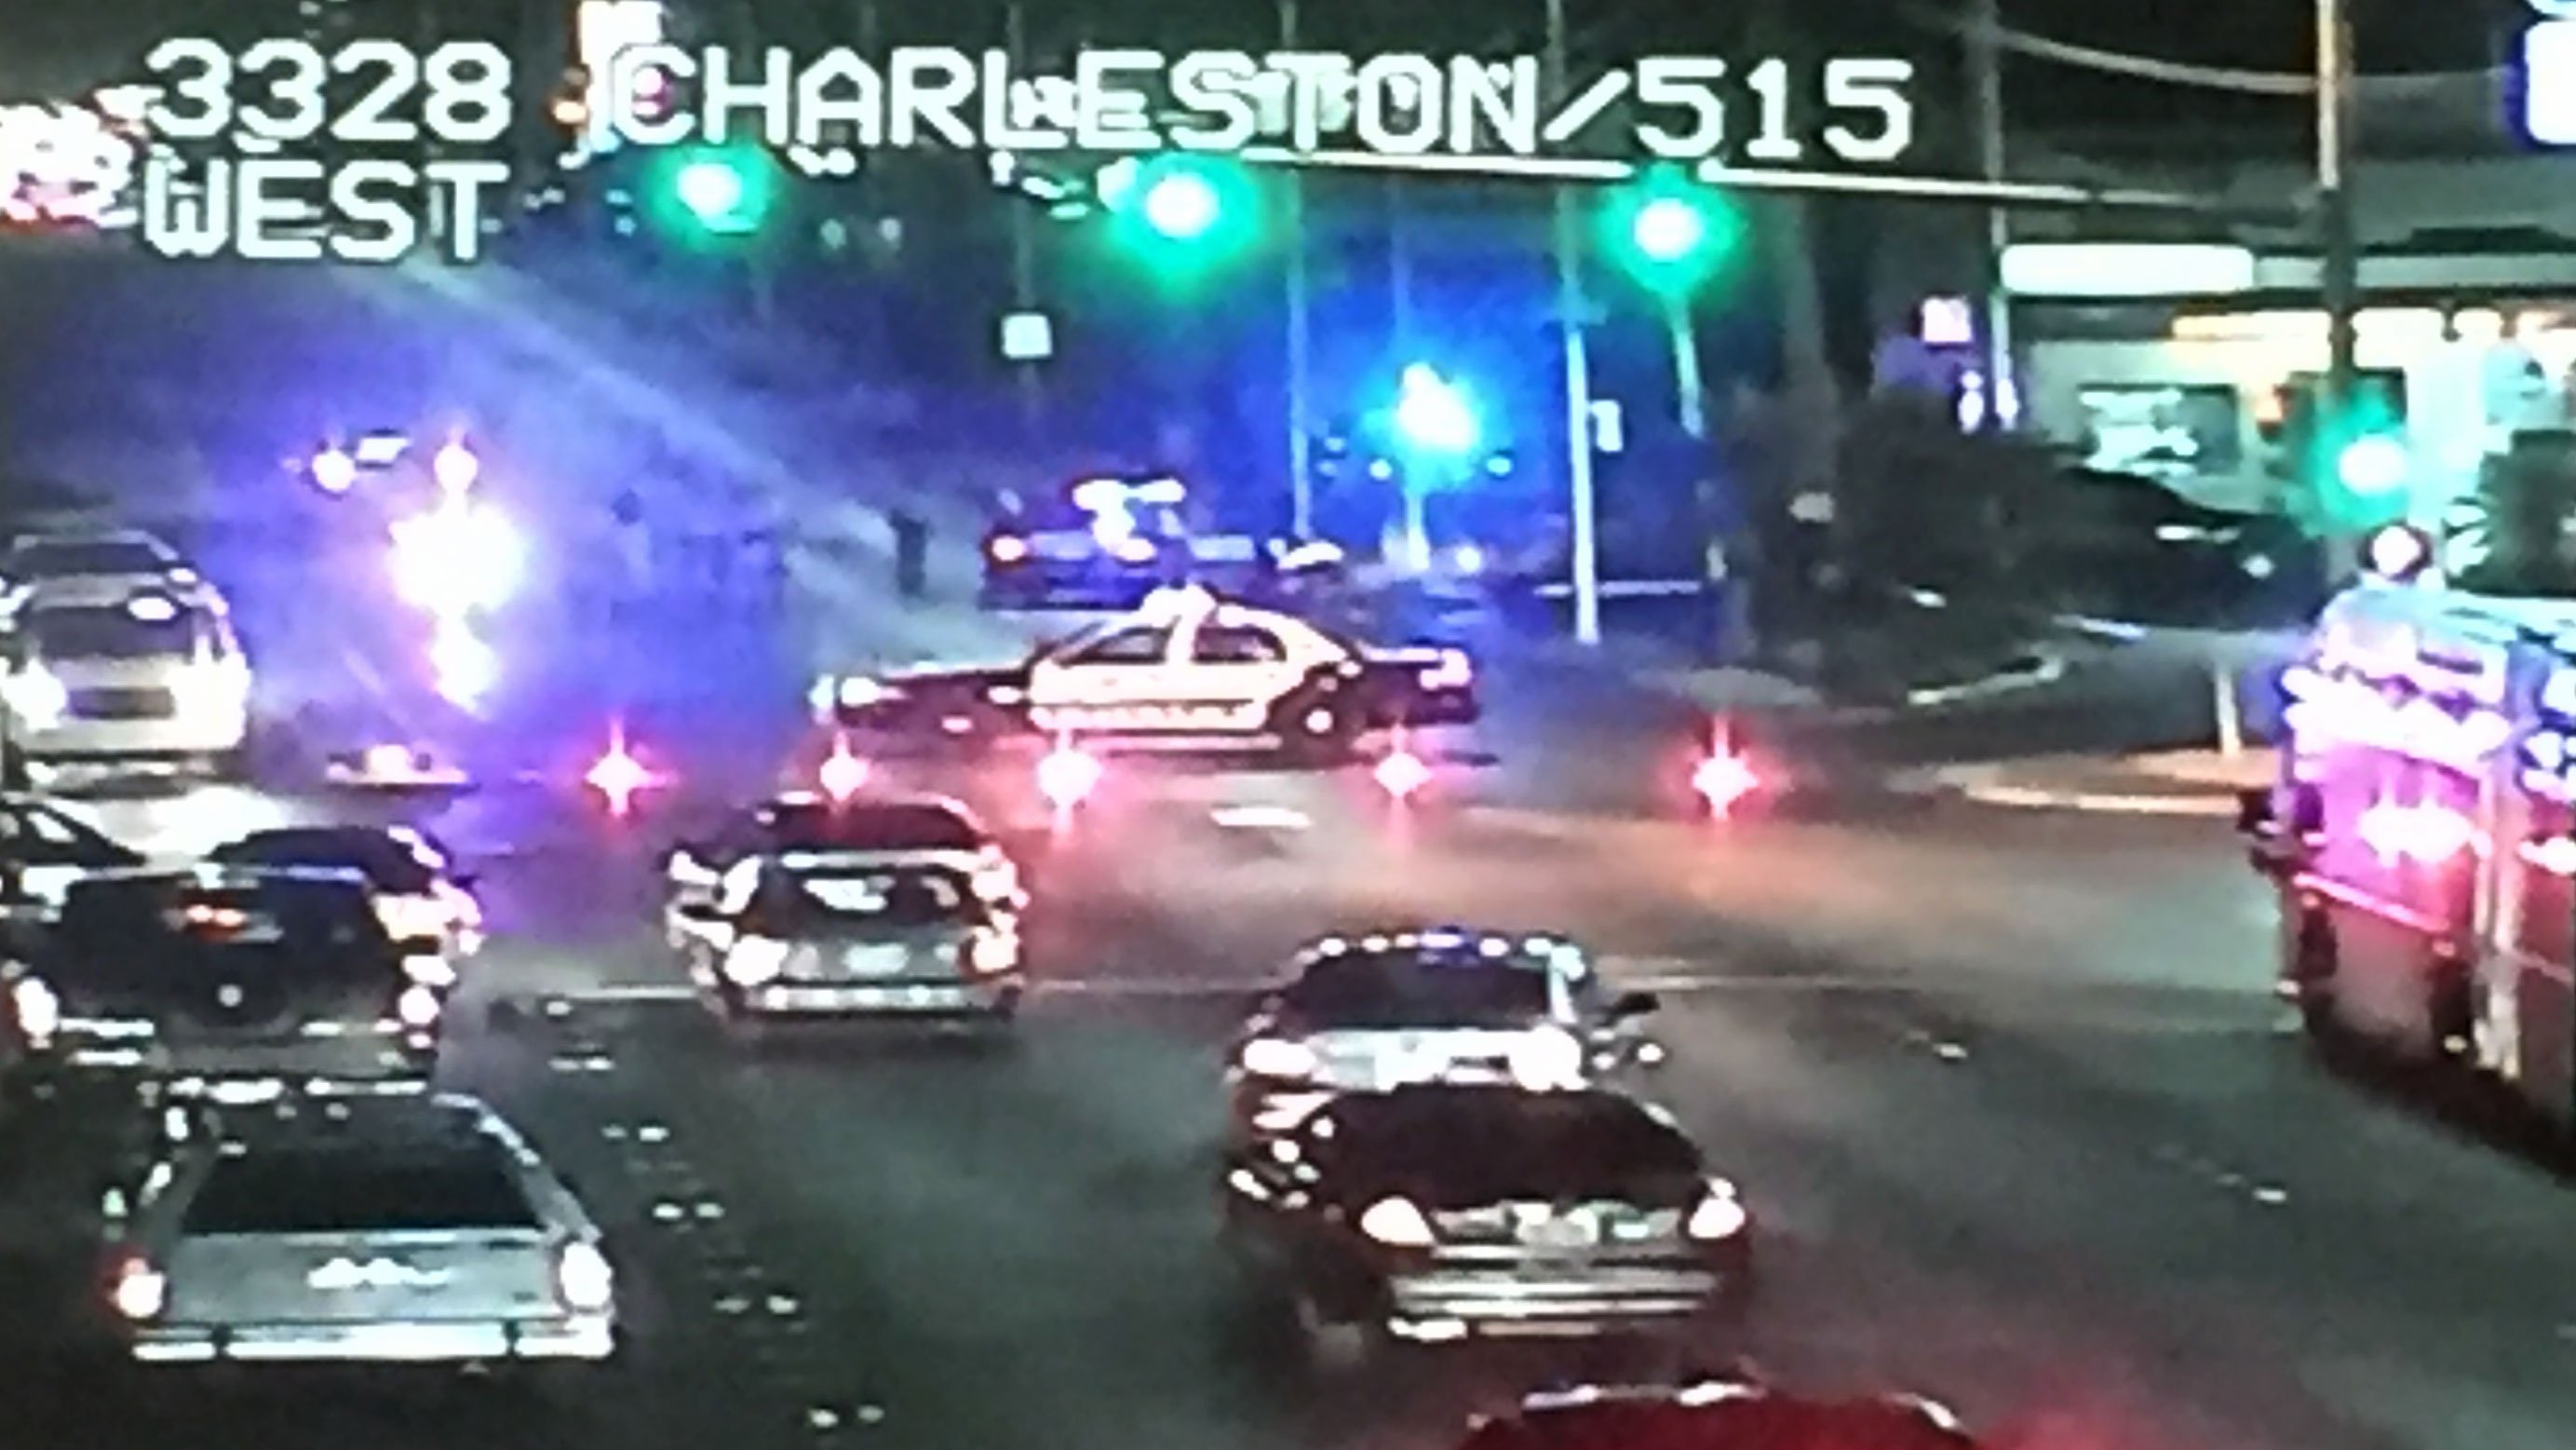 Police are investigating a crash at Charleston Boulevard and Honolulu Street on May 25, 2017. (LVACS)